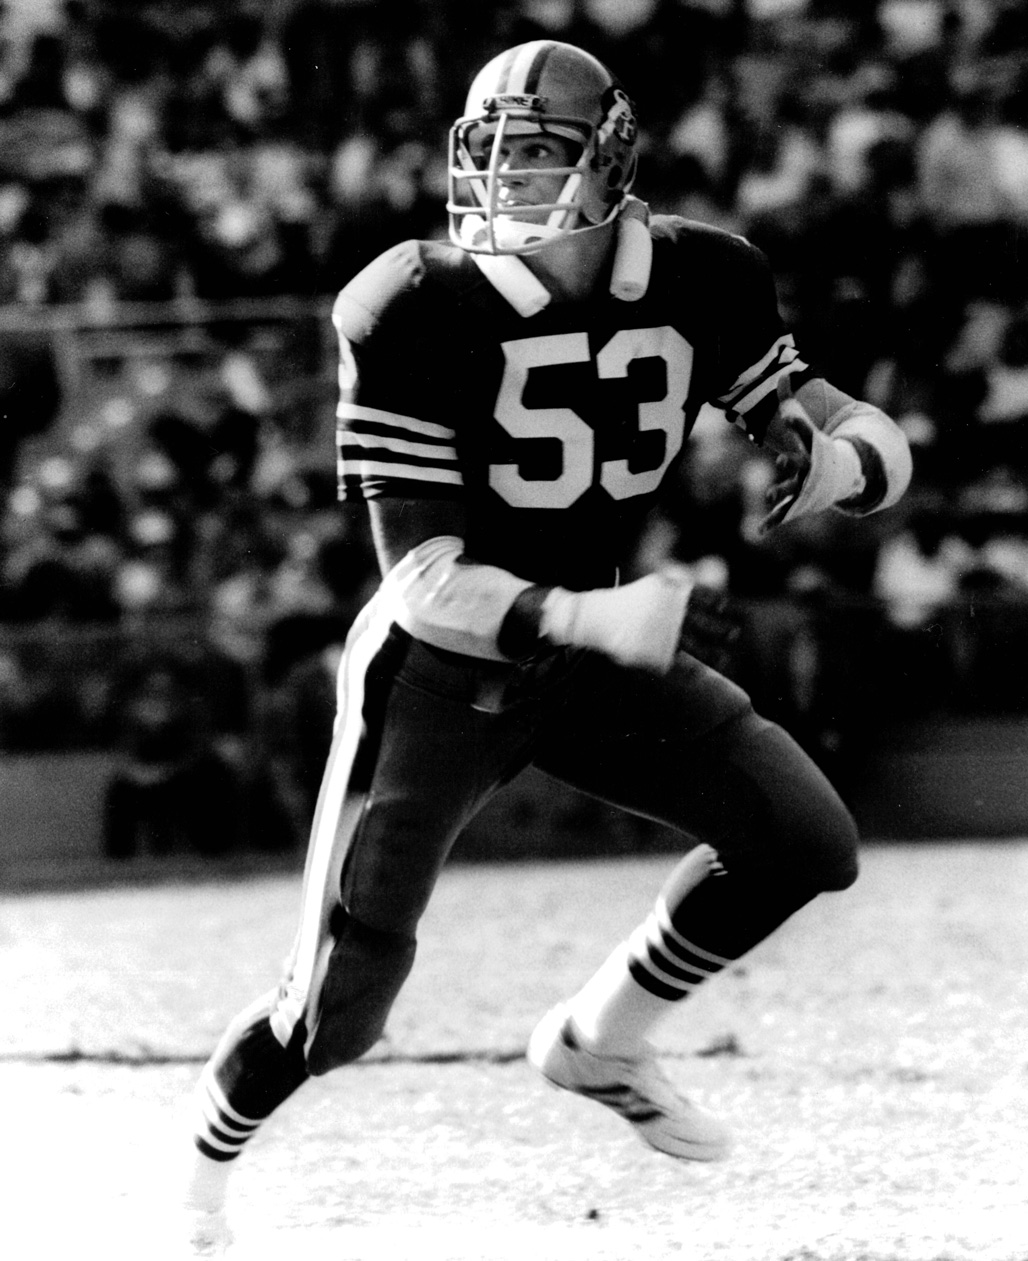 Milt McColl playing football for the San Francisco 49ers